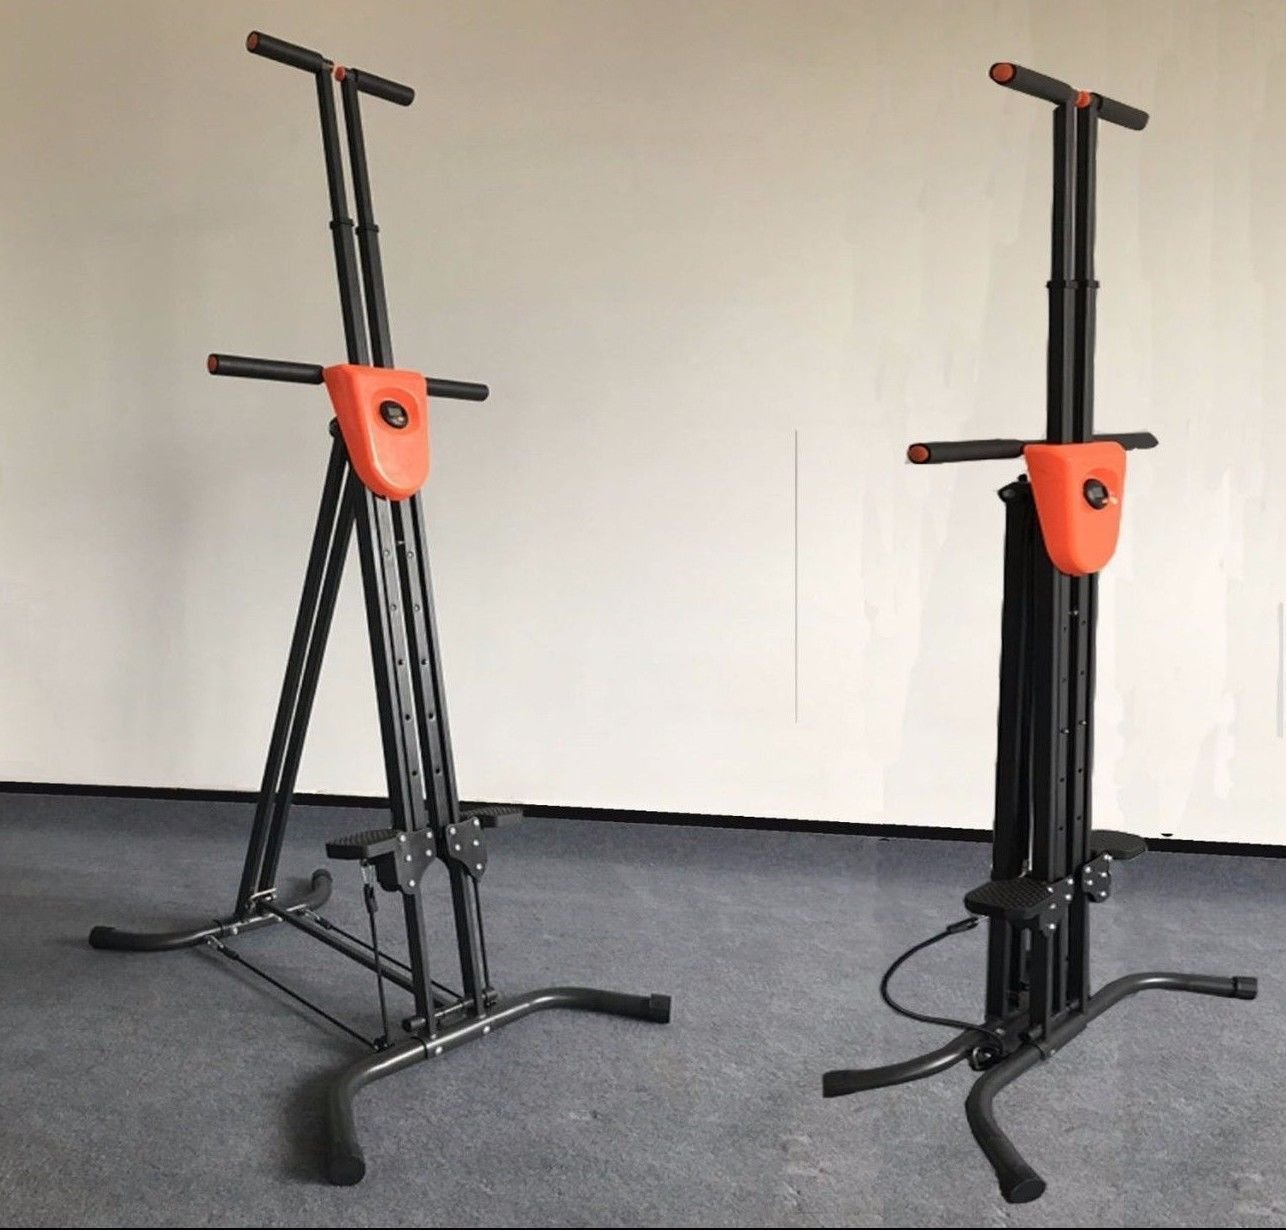 Coldcedar Foldable Vertical Climber Cardio Exercise with monitor and resistance straps for smooth climbing Full Body Workout As Seen On TV (Black, 286lbs) by Coldcedar (Image #2)